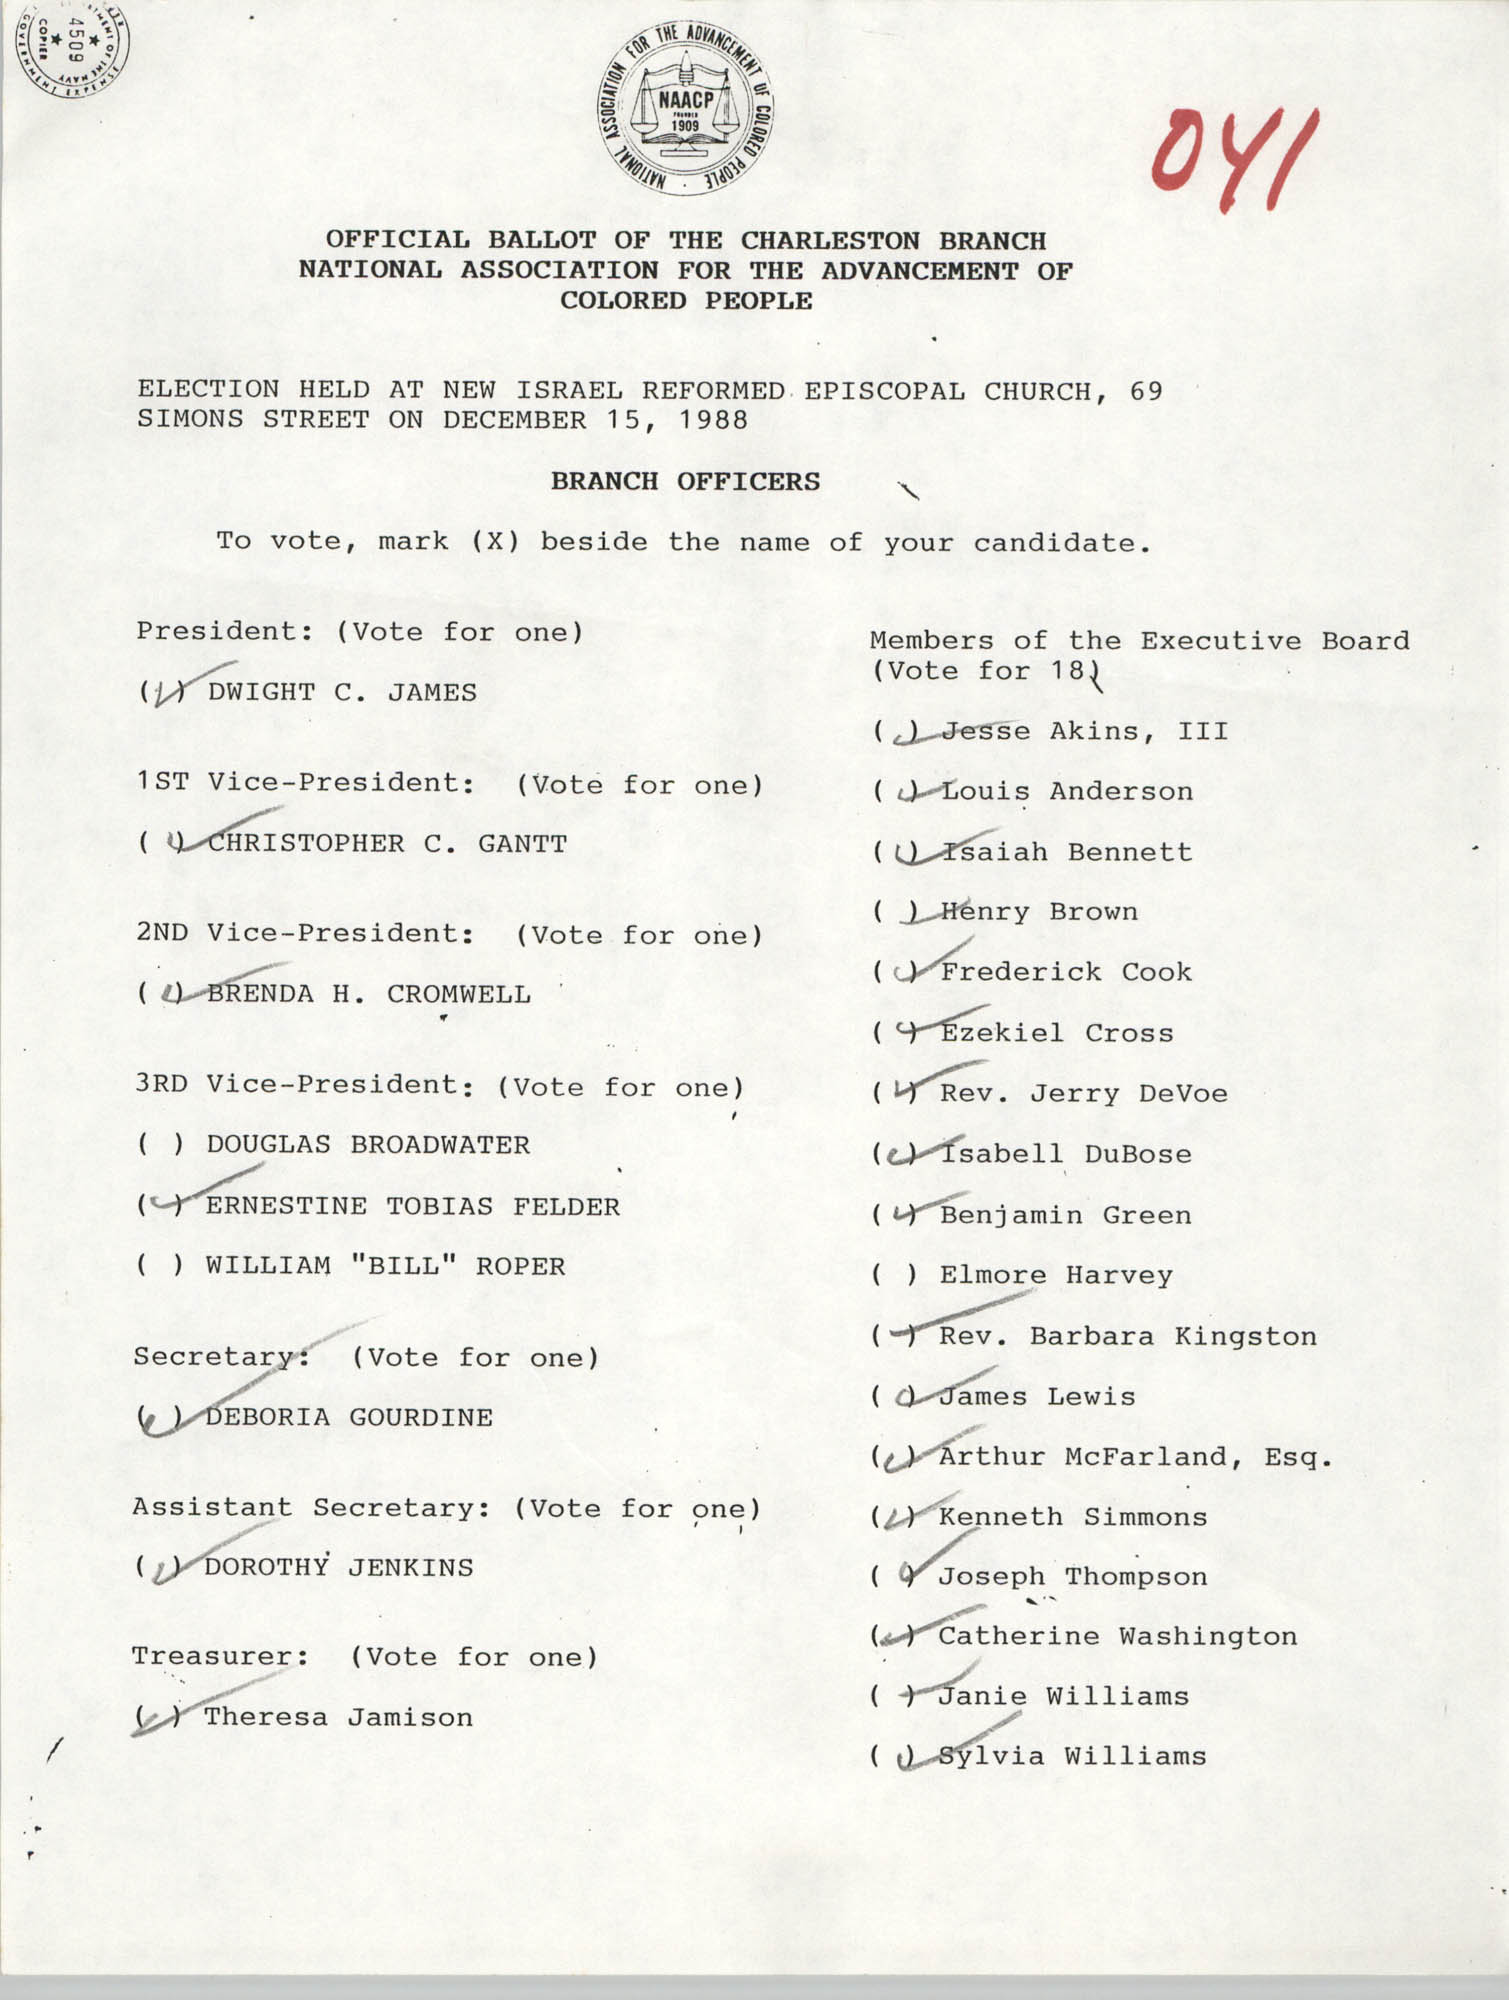 Official Ballot of the Charleston Branch of the NAACP, 041